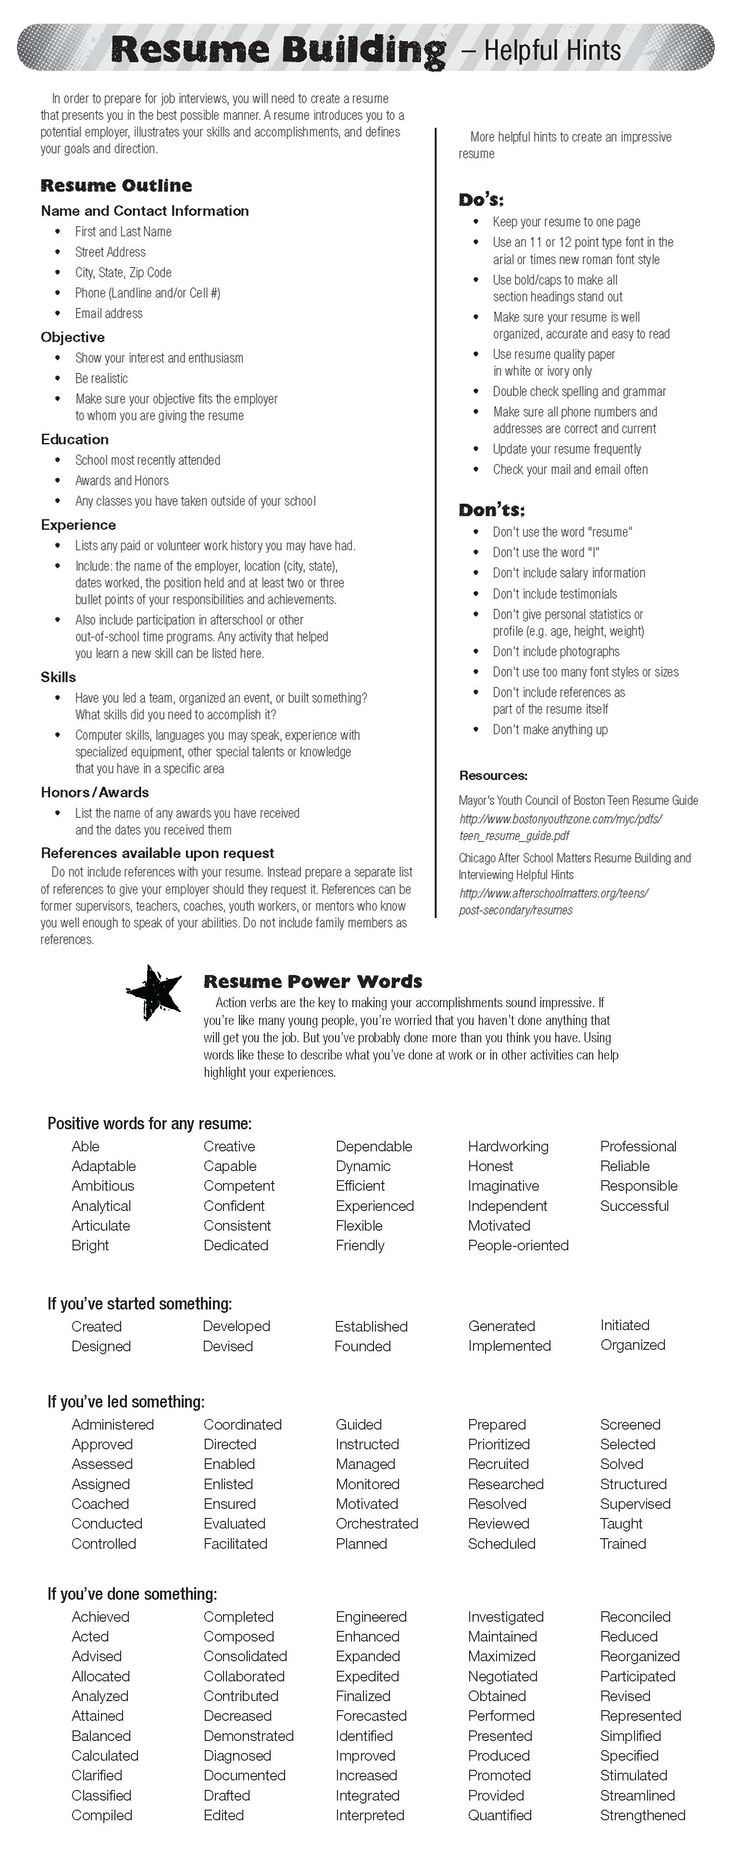 Picnictoimpeachus  Pleasing  Ideas About Resume On Pinterest  Cv Format Resume Cv And  With Magnificent  Ideas About Resume On Pinterest  Cv Format Resume Cv And Resume Templates With Easy On The Eye How To Write A Resume For College Also High School Resumes In Addition Resume Sample Objectives And Good Objectives For Resume As Well As Resume Titles Additionally Resumes For College Students From Pinterestcom With Picnictoimpeachus  Magnificent  Ideas About Resume On Pinterest  Cv Format Resume Cv And  With Easy On The Eye  Ideas About Resume On Pinterest  Cv Format Resume Cv And Resume Templates And Pleasing How To Write A Resume For College Also High School Resumes In Addition Resume Sample Objectives From Pinterestcom